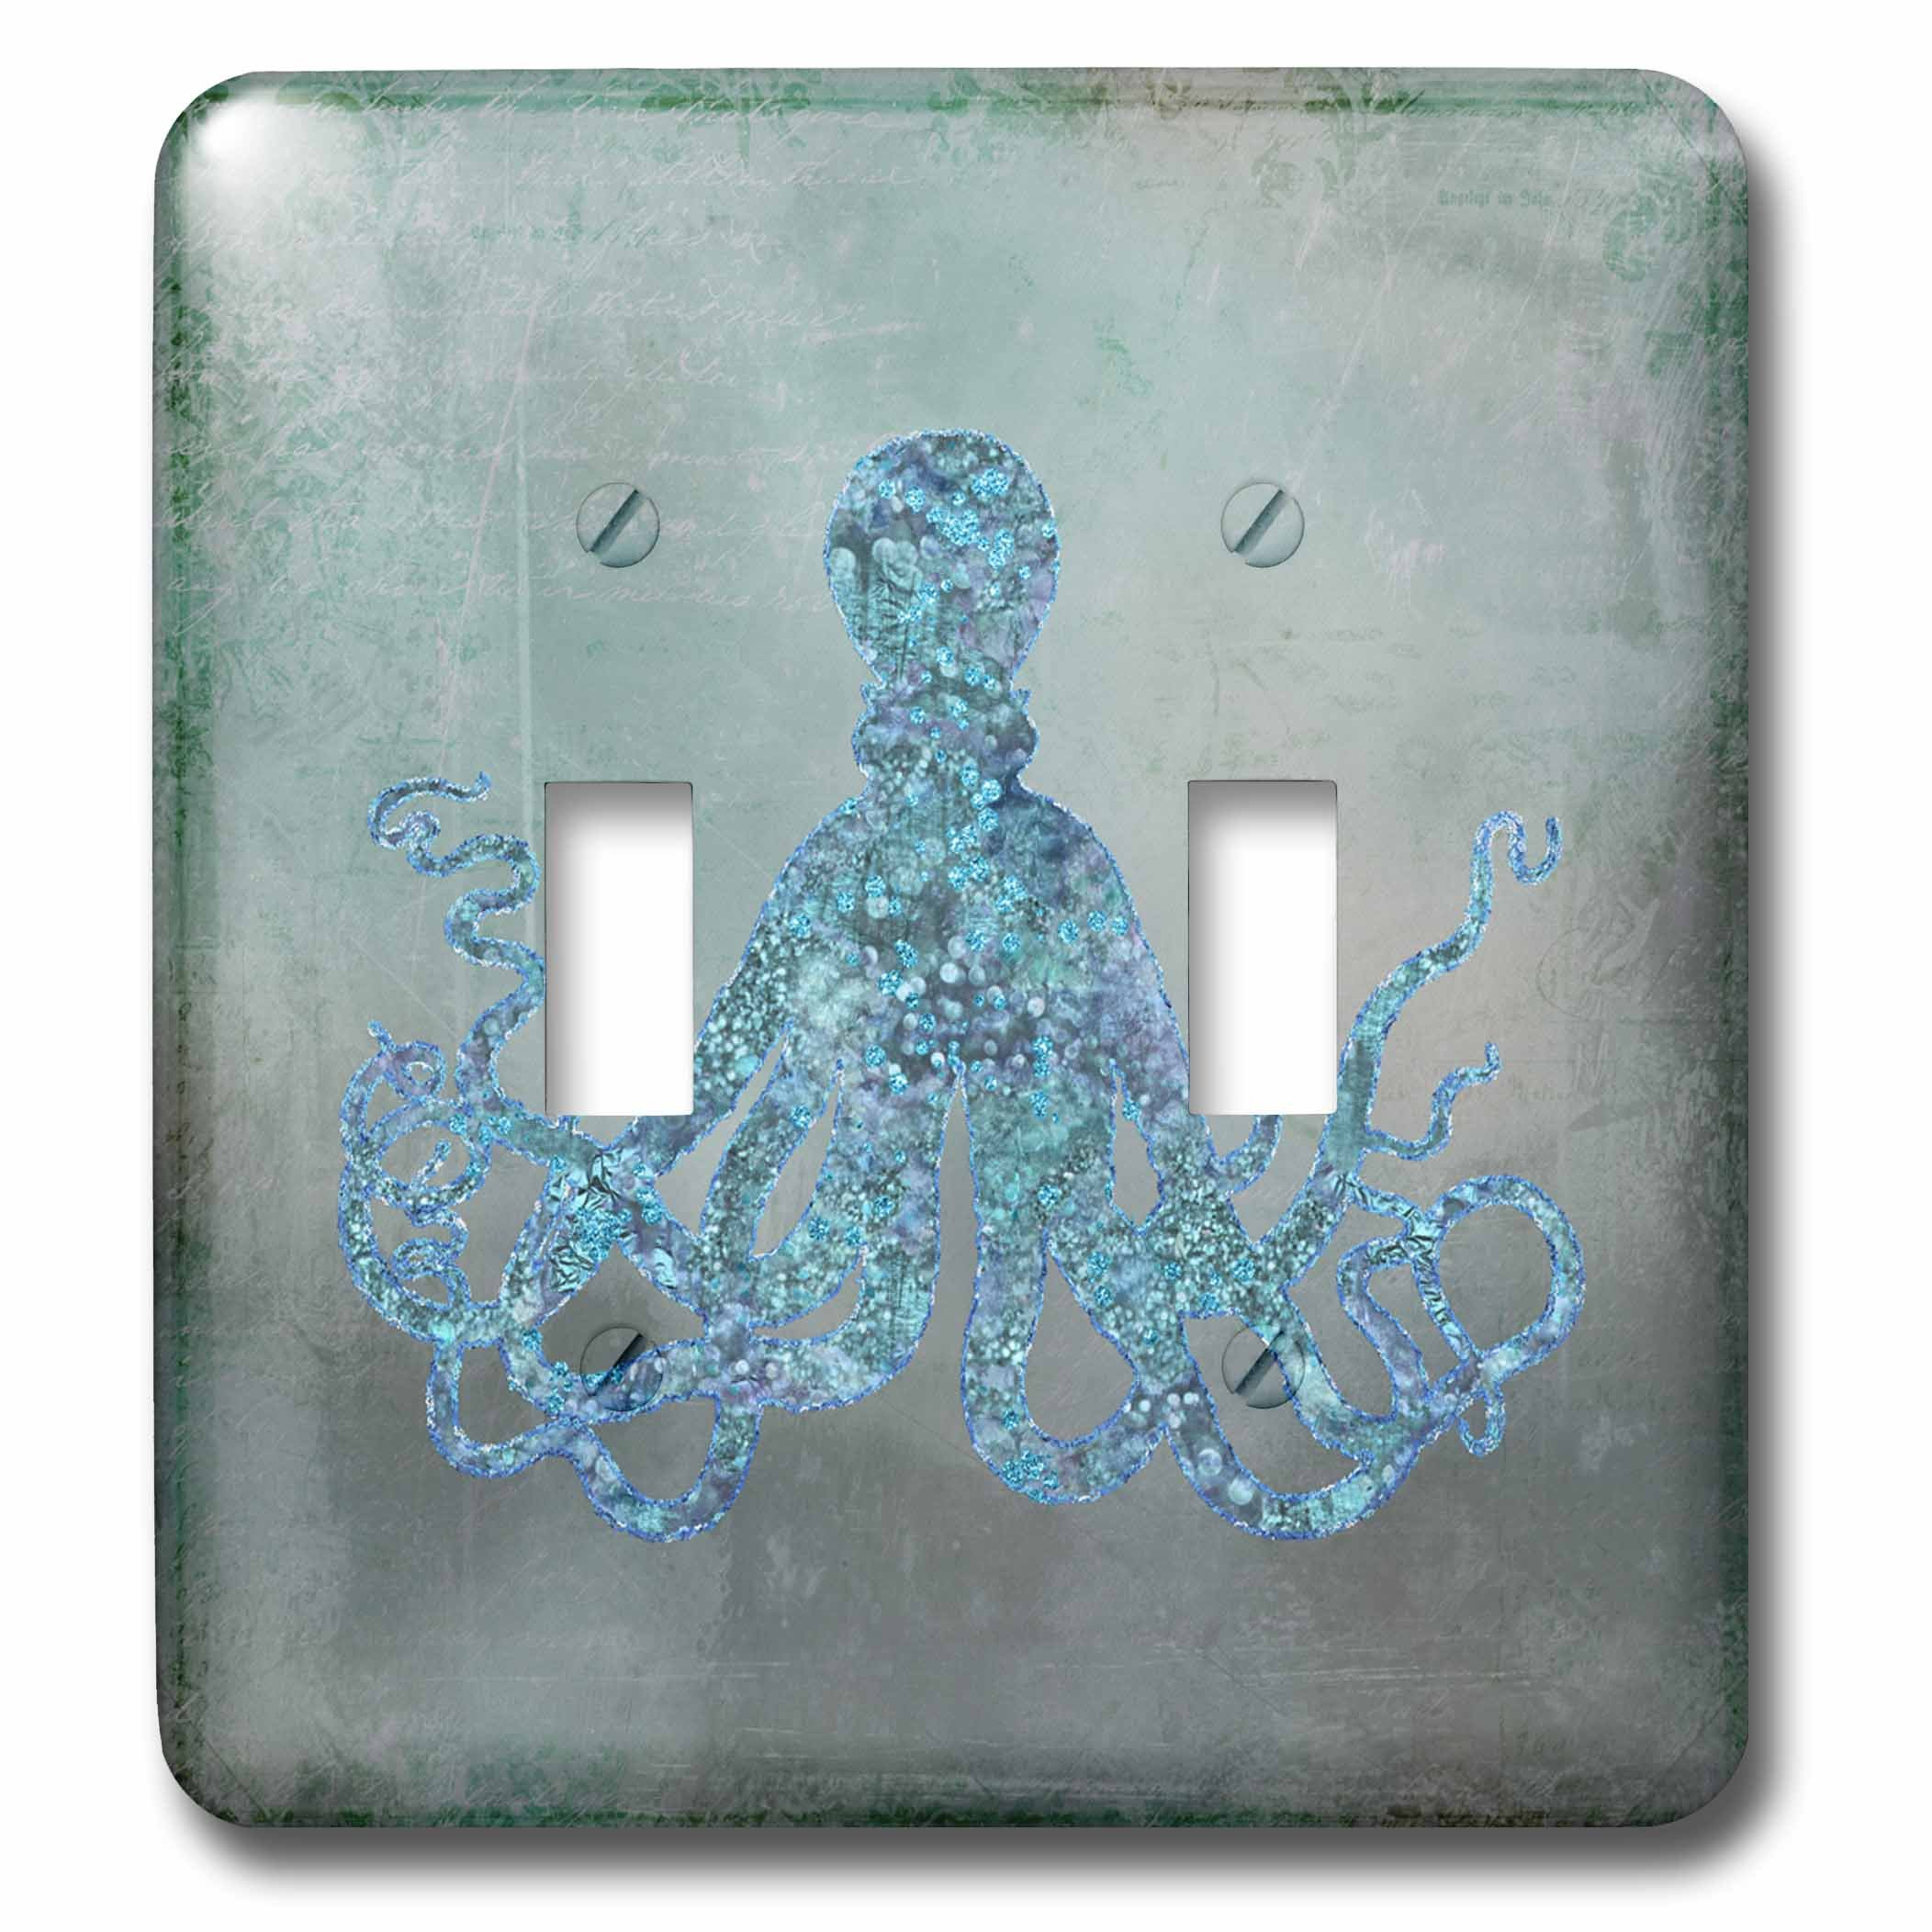 3dRose Andrea Haase Animals Illustration - Turquoise Glamorous Octopus Mixed Media Art - Light Switch Covers - double toggle switch (lsp_282454_2)